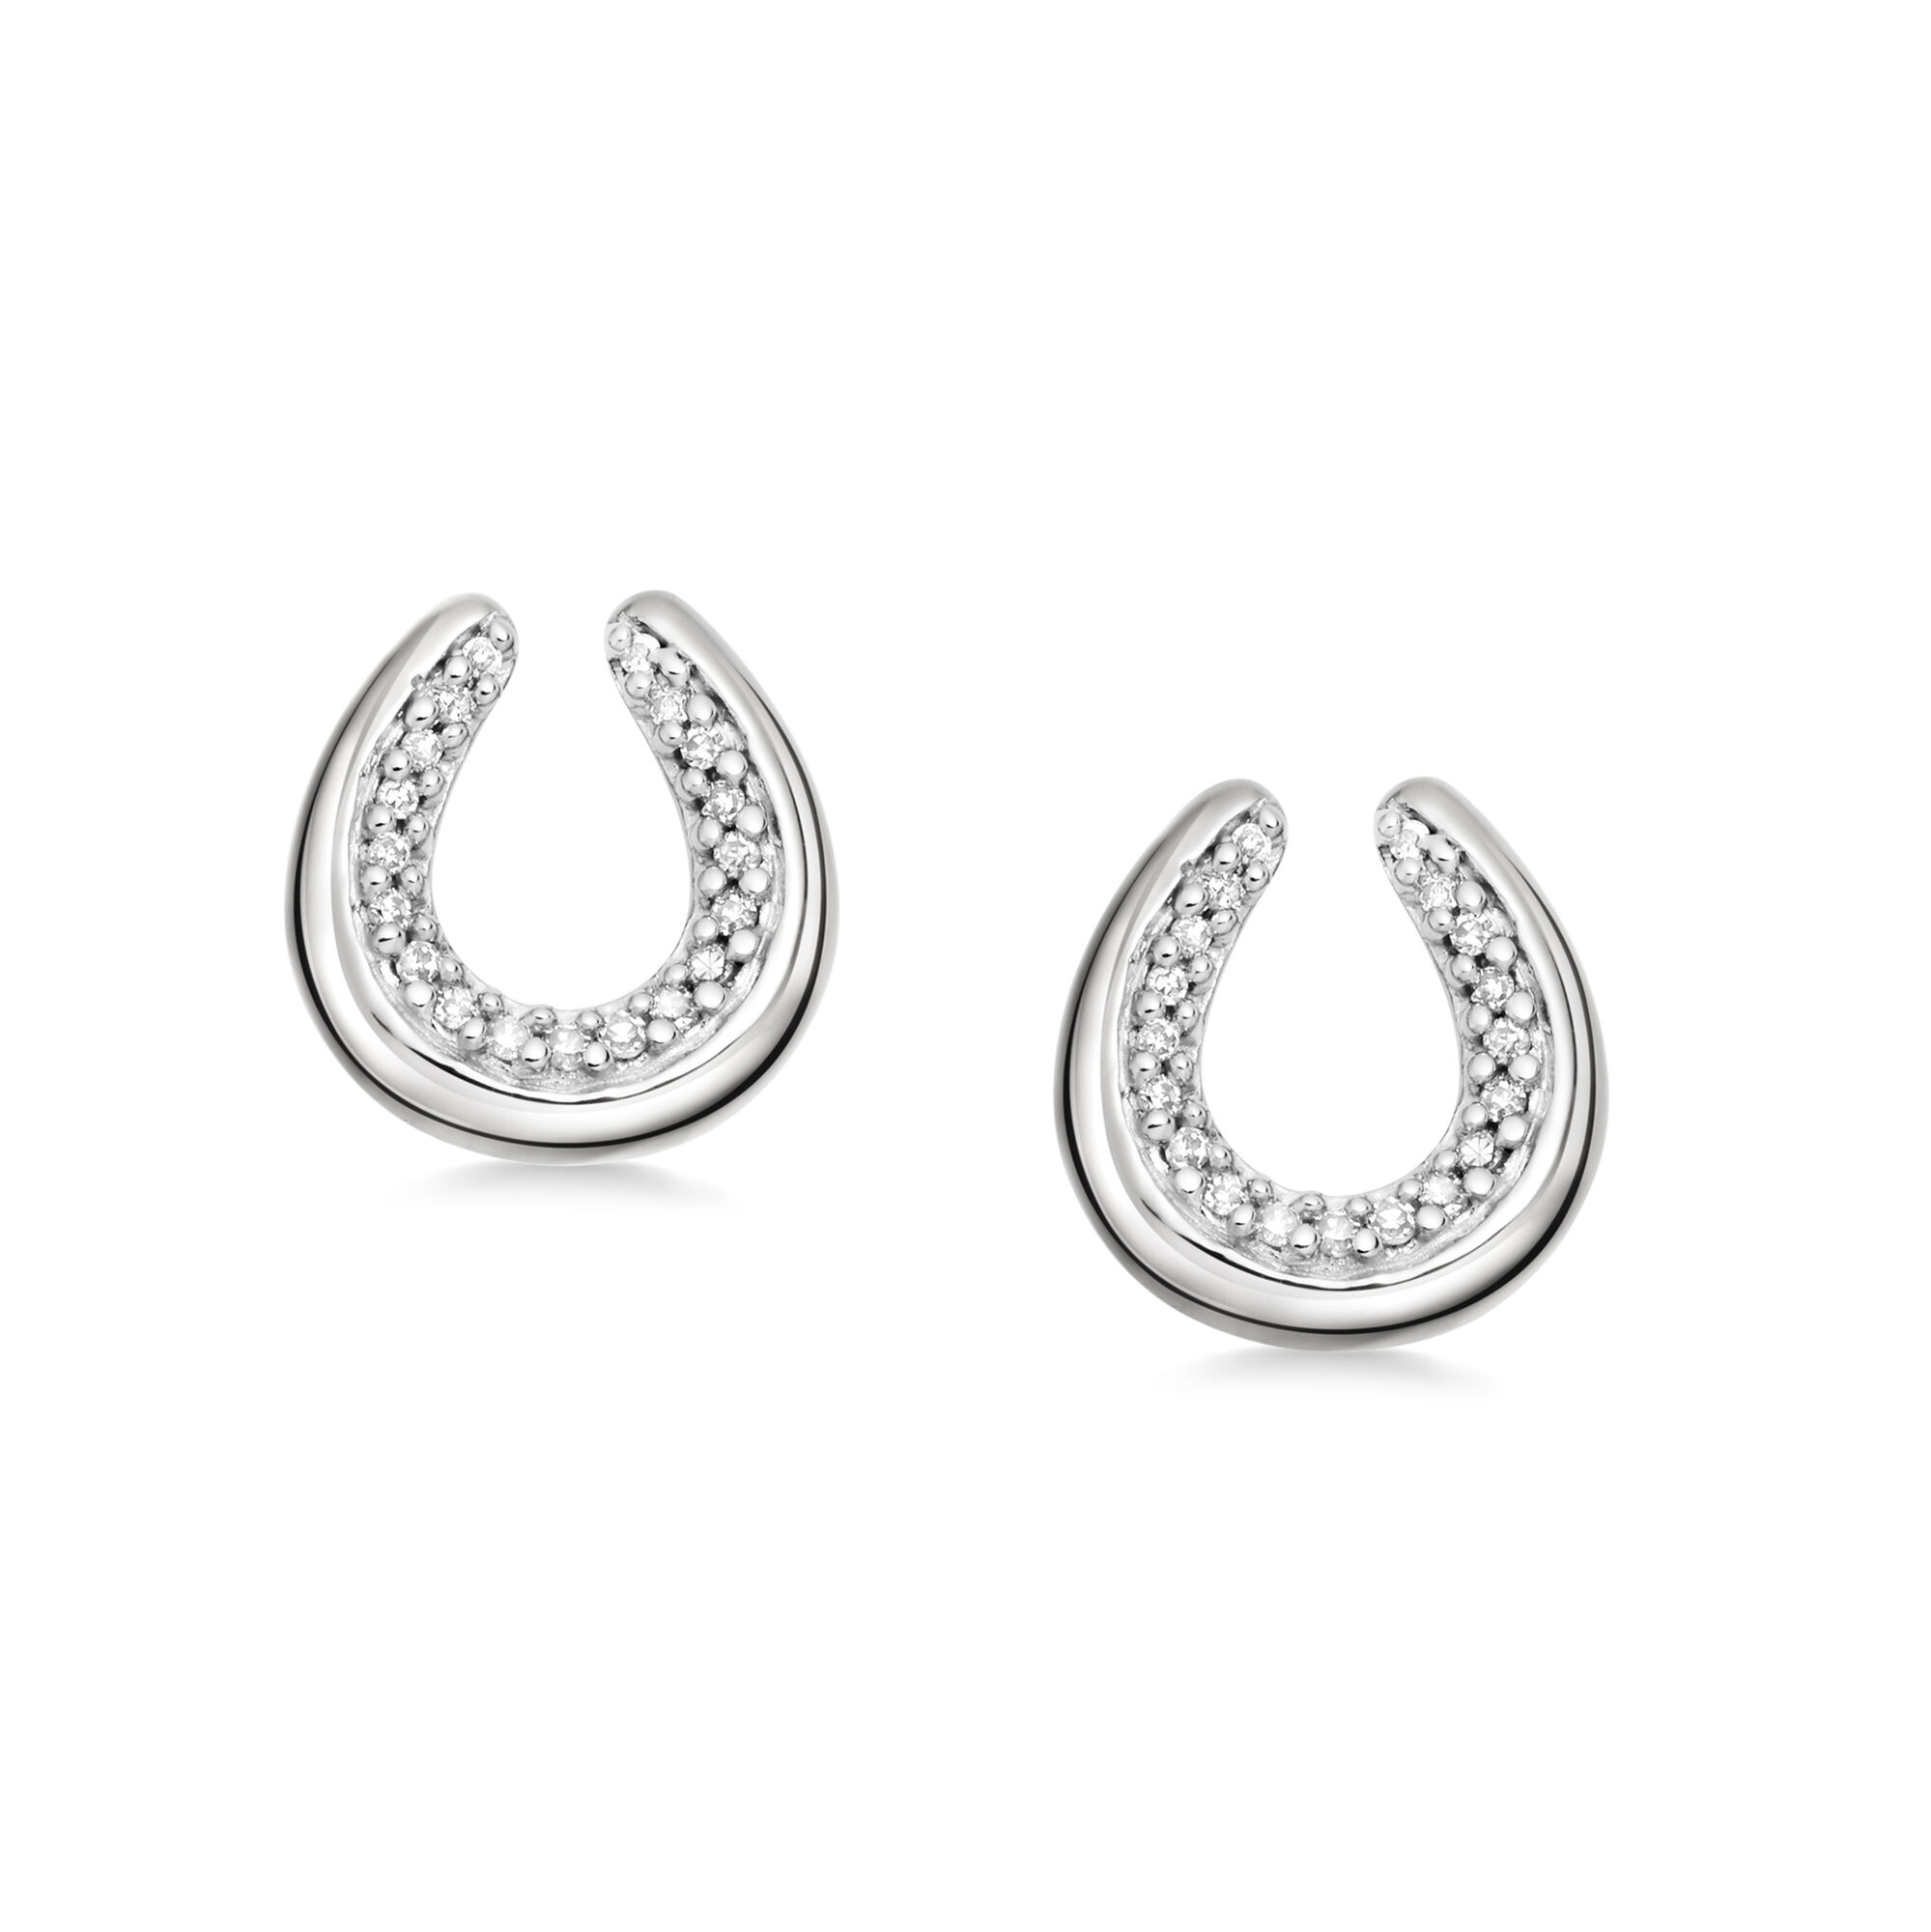 Ascot Diamond Essentials Sterling Silver Horseshoe Earrings Hires